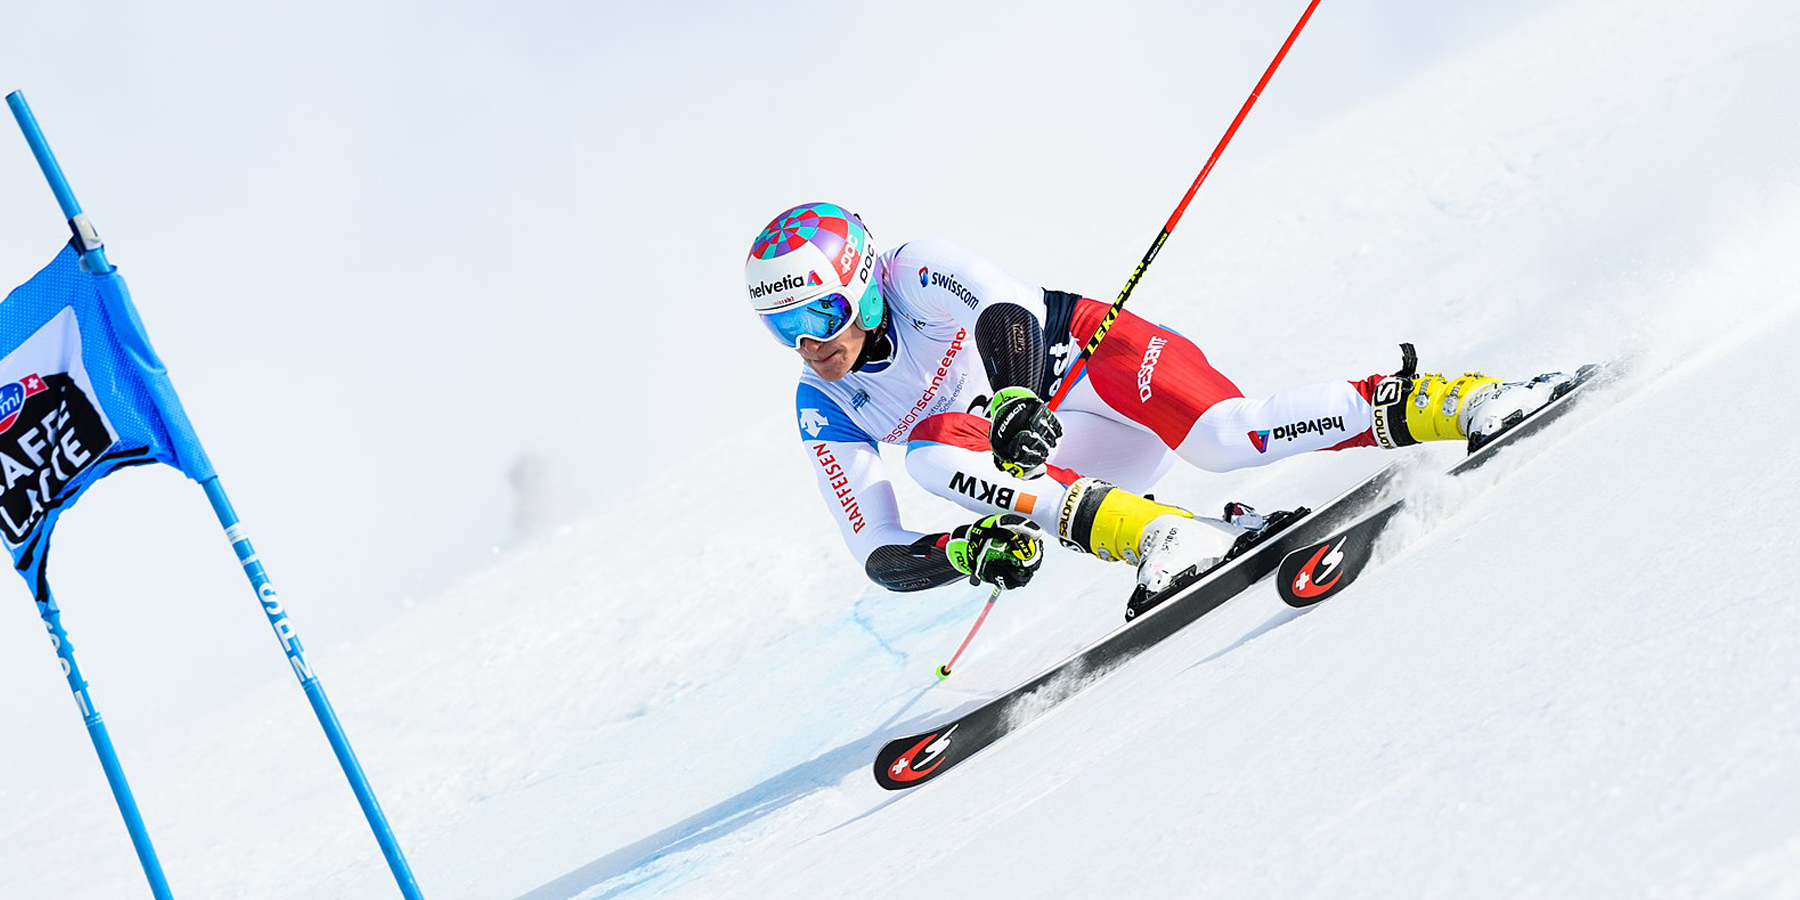 FIS Alpine World Ski Championships: What You Missed